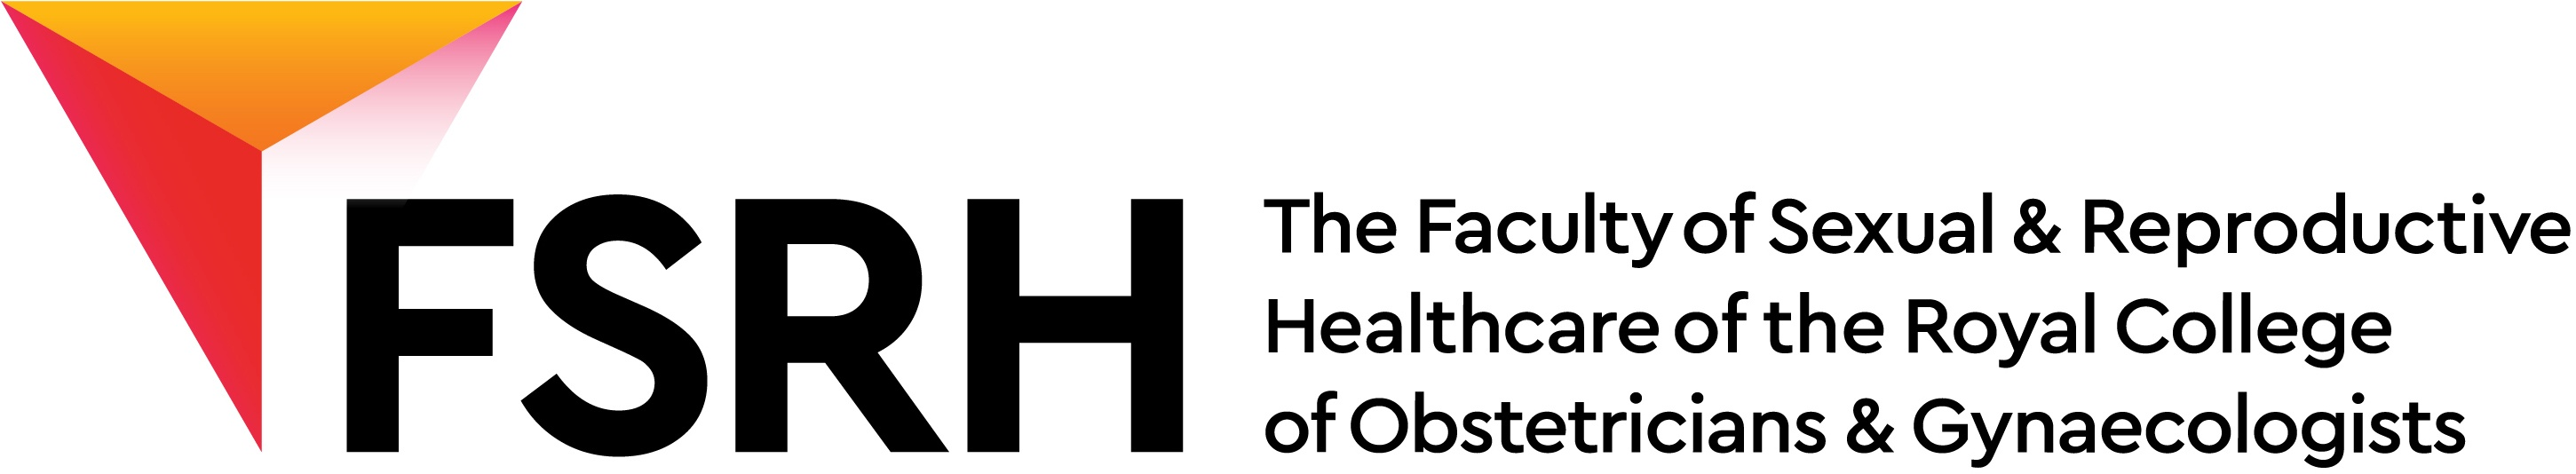 Faculty of Sexual and Reproductive Healthcare logo